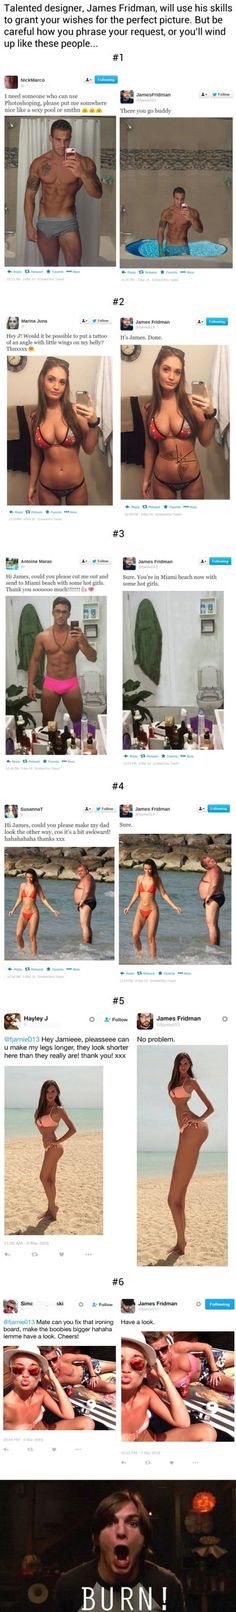 Graphic designer trolls people who ask for their pics to be Photoshopped in the…